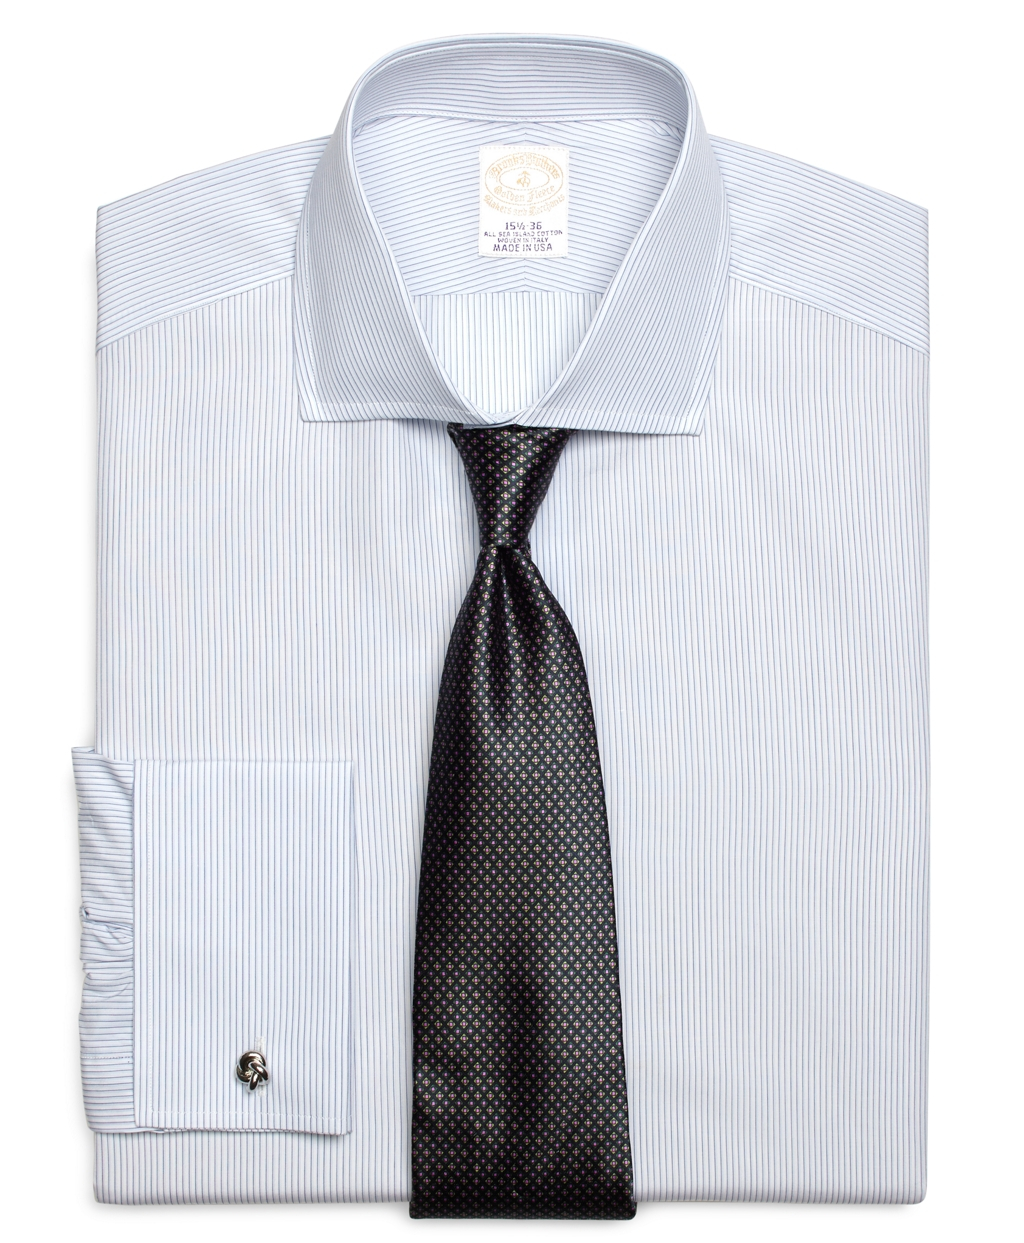 Lyst brooks brothers golden fleece madison fit french for Brooks brothers dress shirt fit